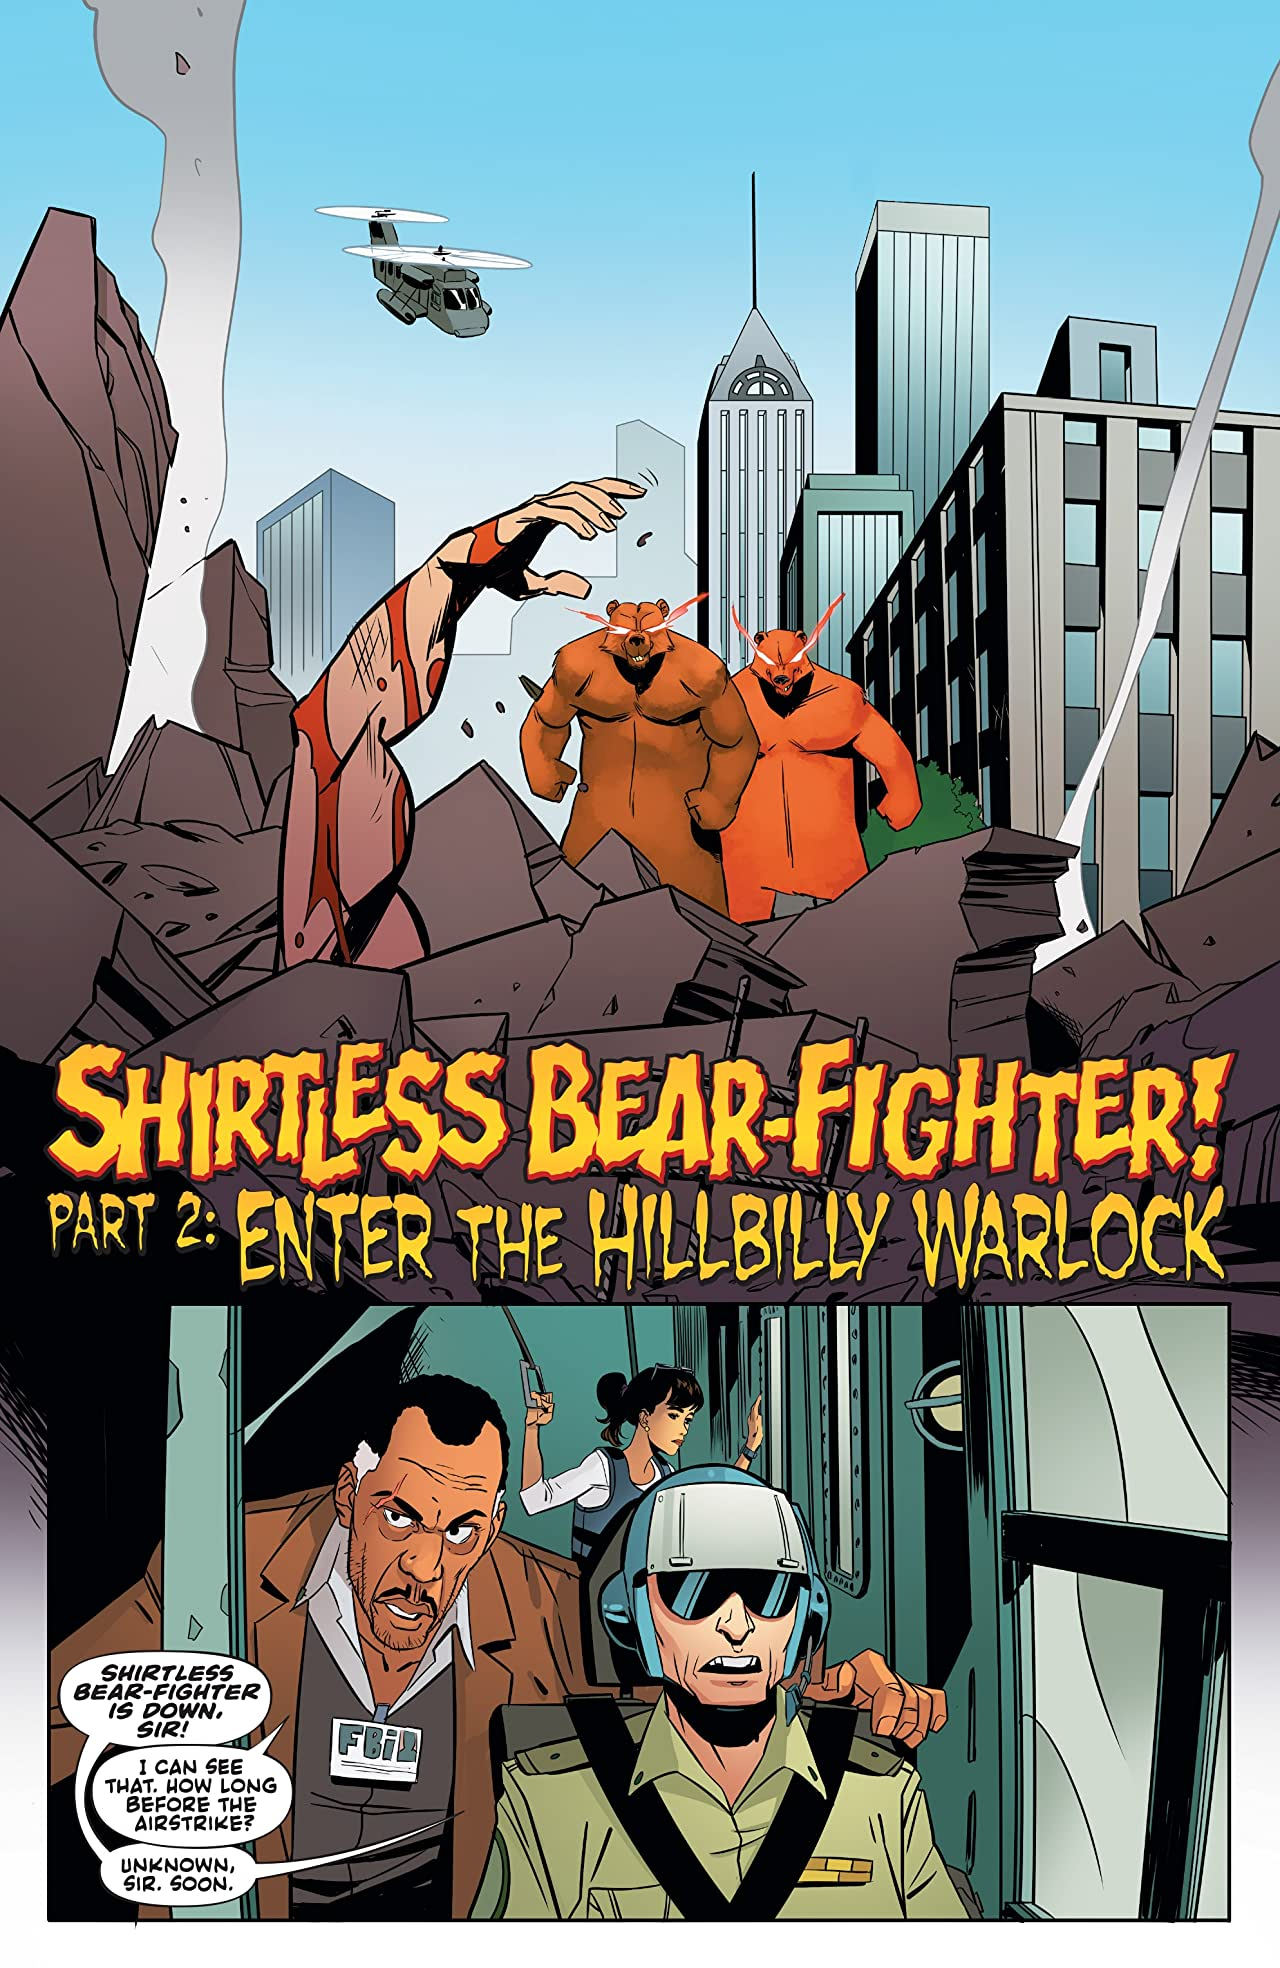 Shirtless Bear-Fighter! #2